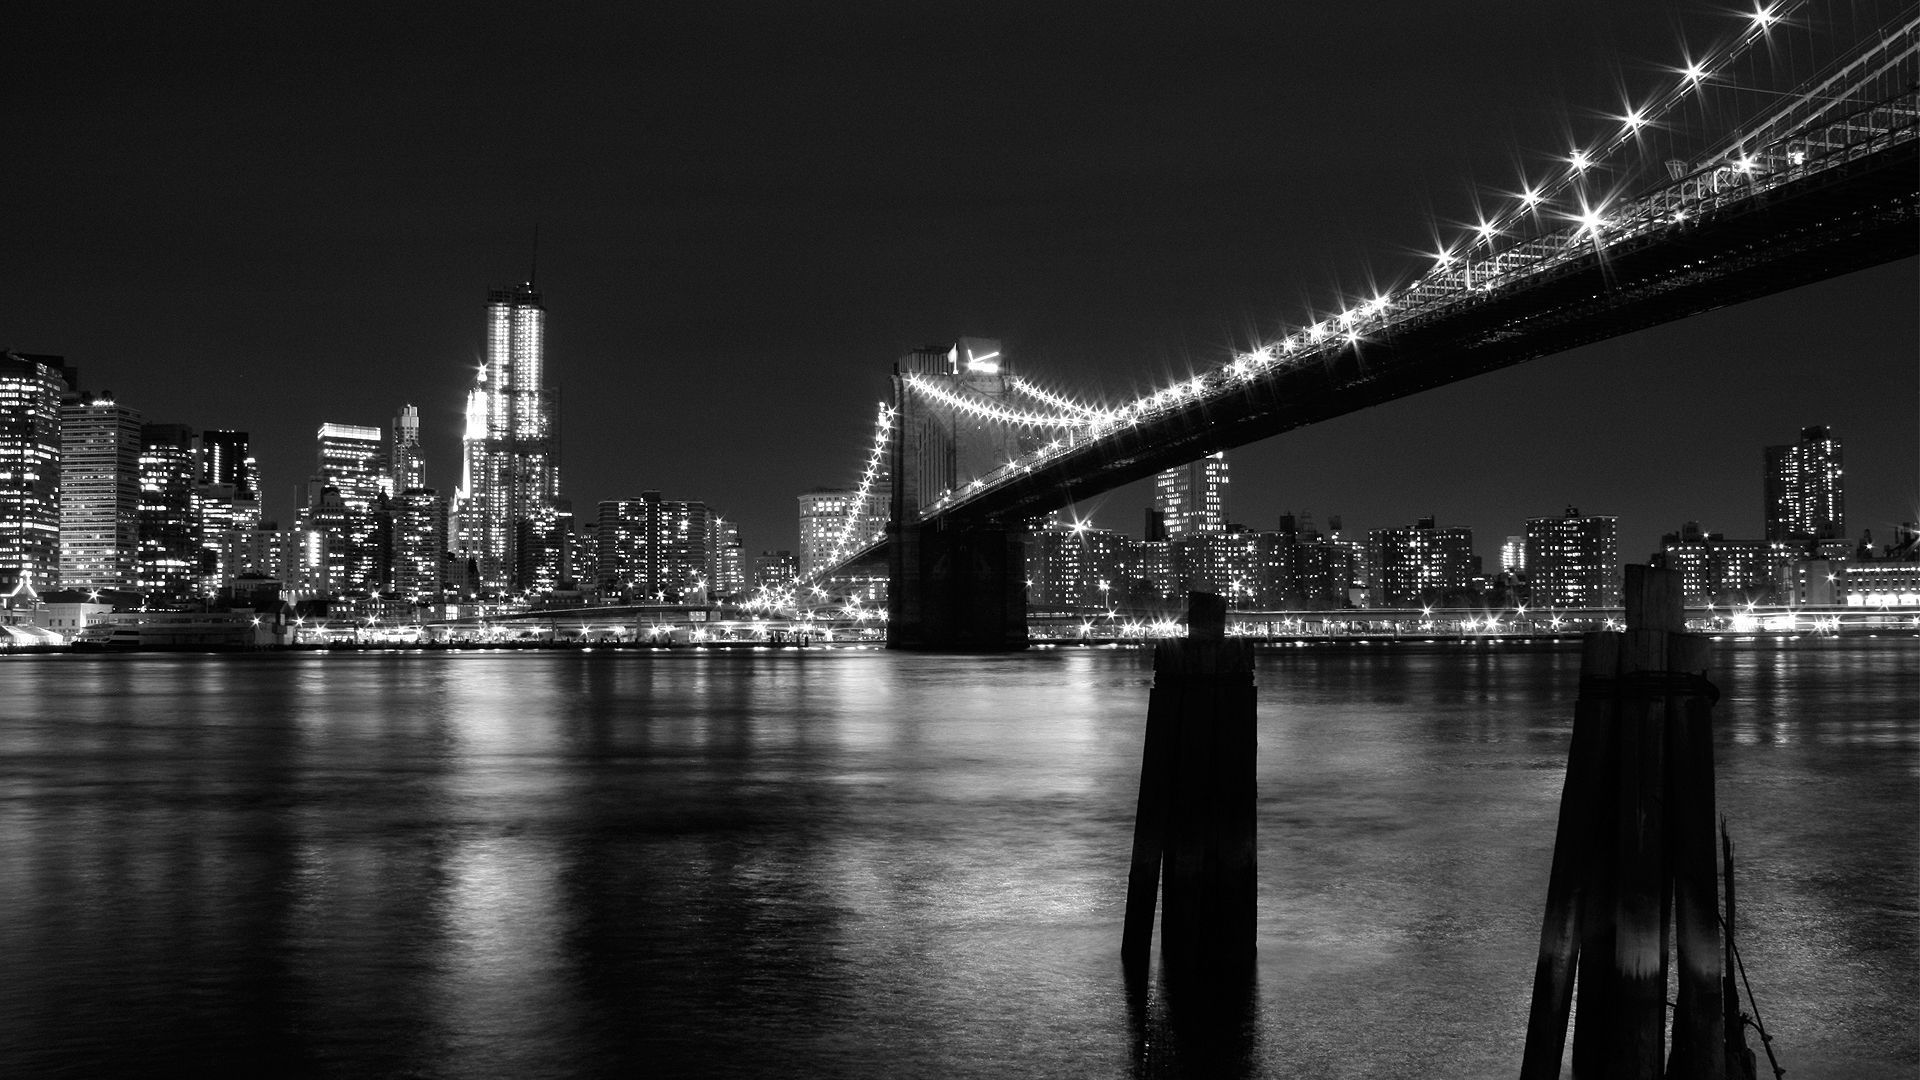 Brooklyn Bridge at night [1920x1080] wallpapers City